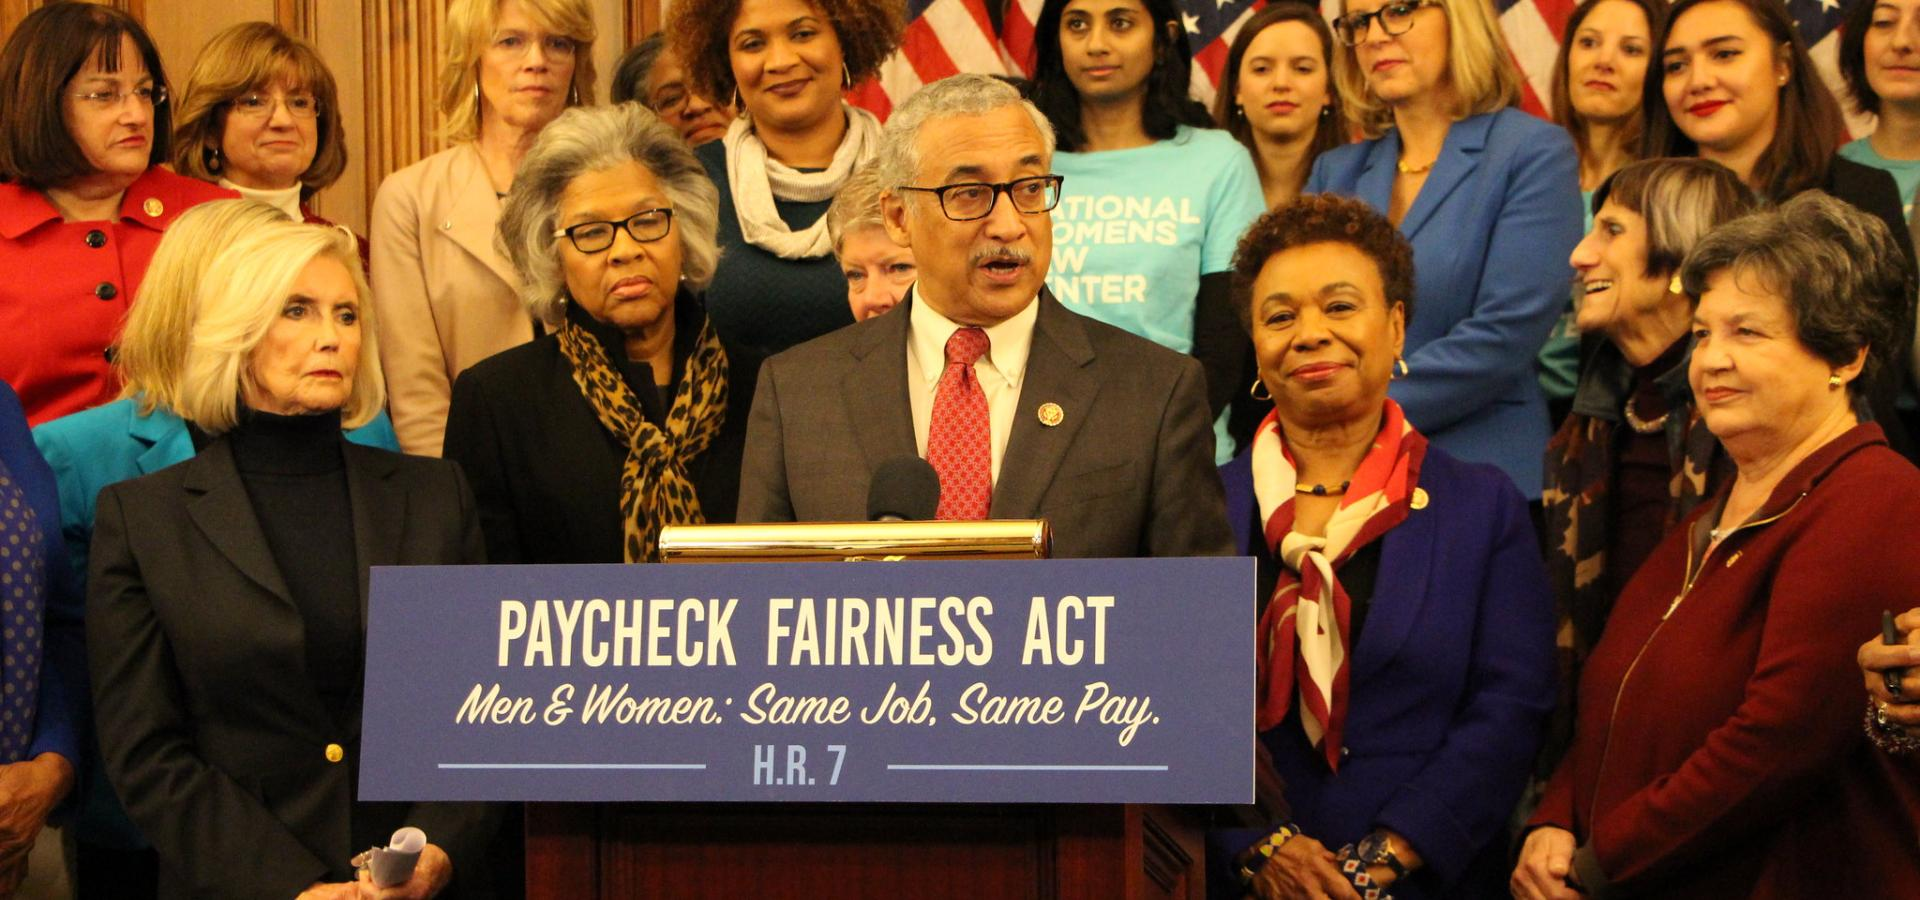 Scott at Paycheck Fairness Act Press Conference